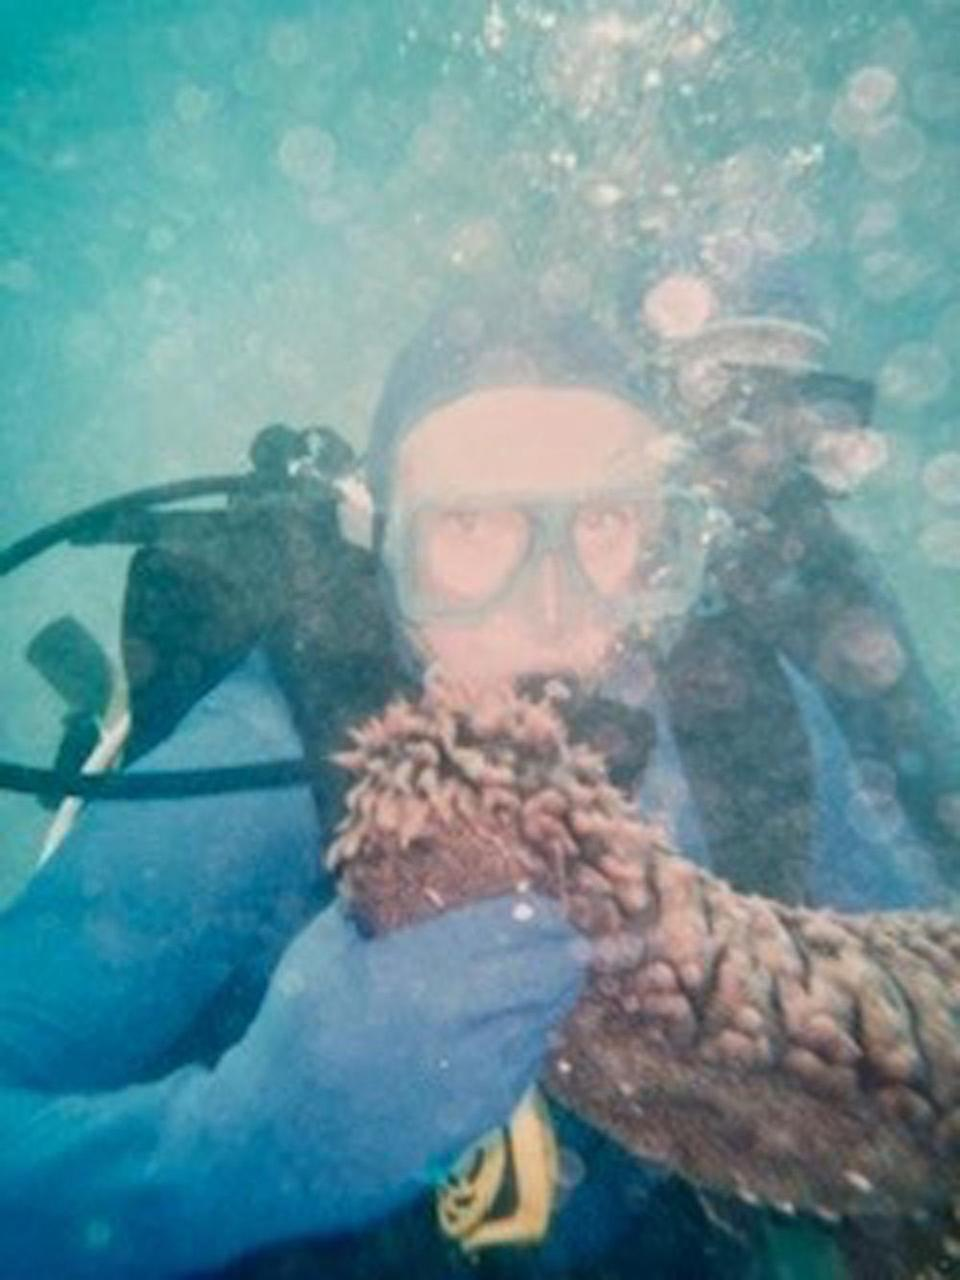 Sue embarked on a divorce bucket list, where she travelled the world and enjoyed new experiences, including scuba diving. (Collect/PA Real Life)